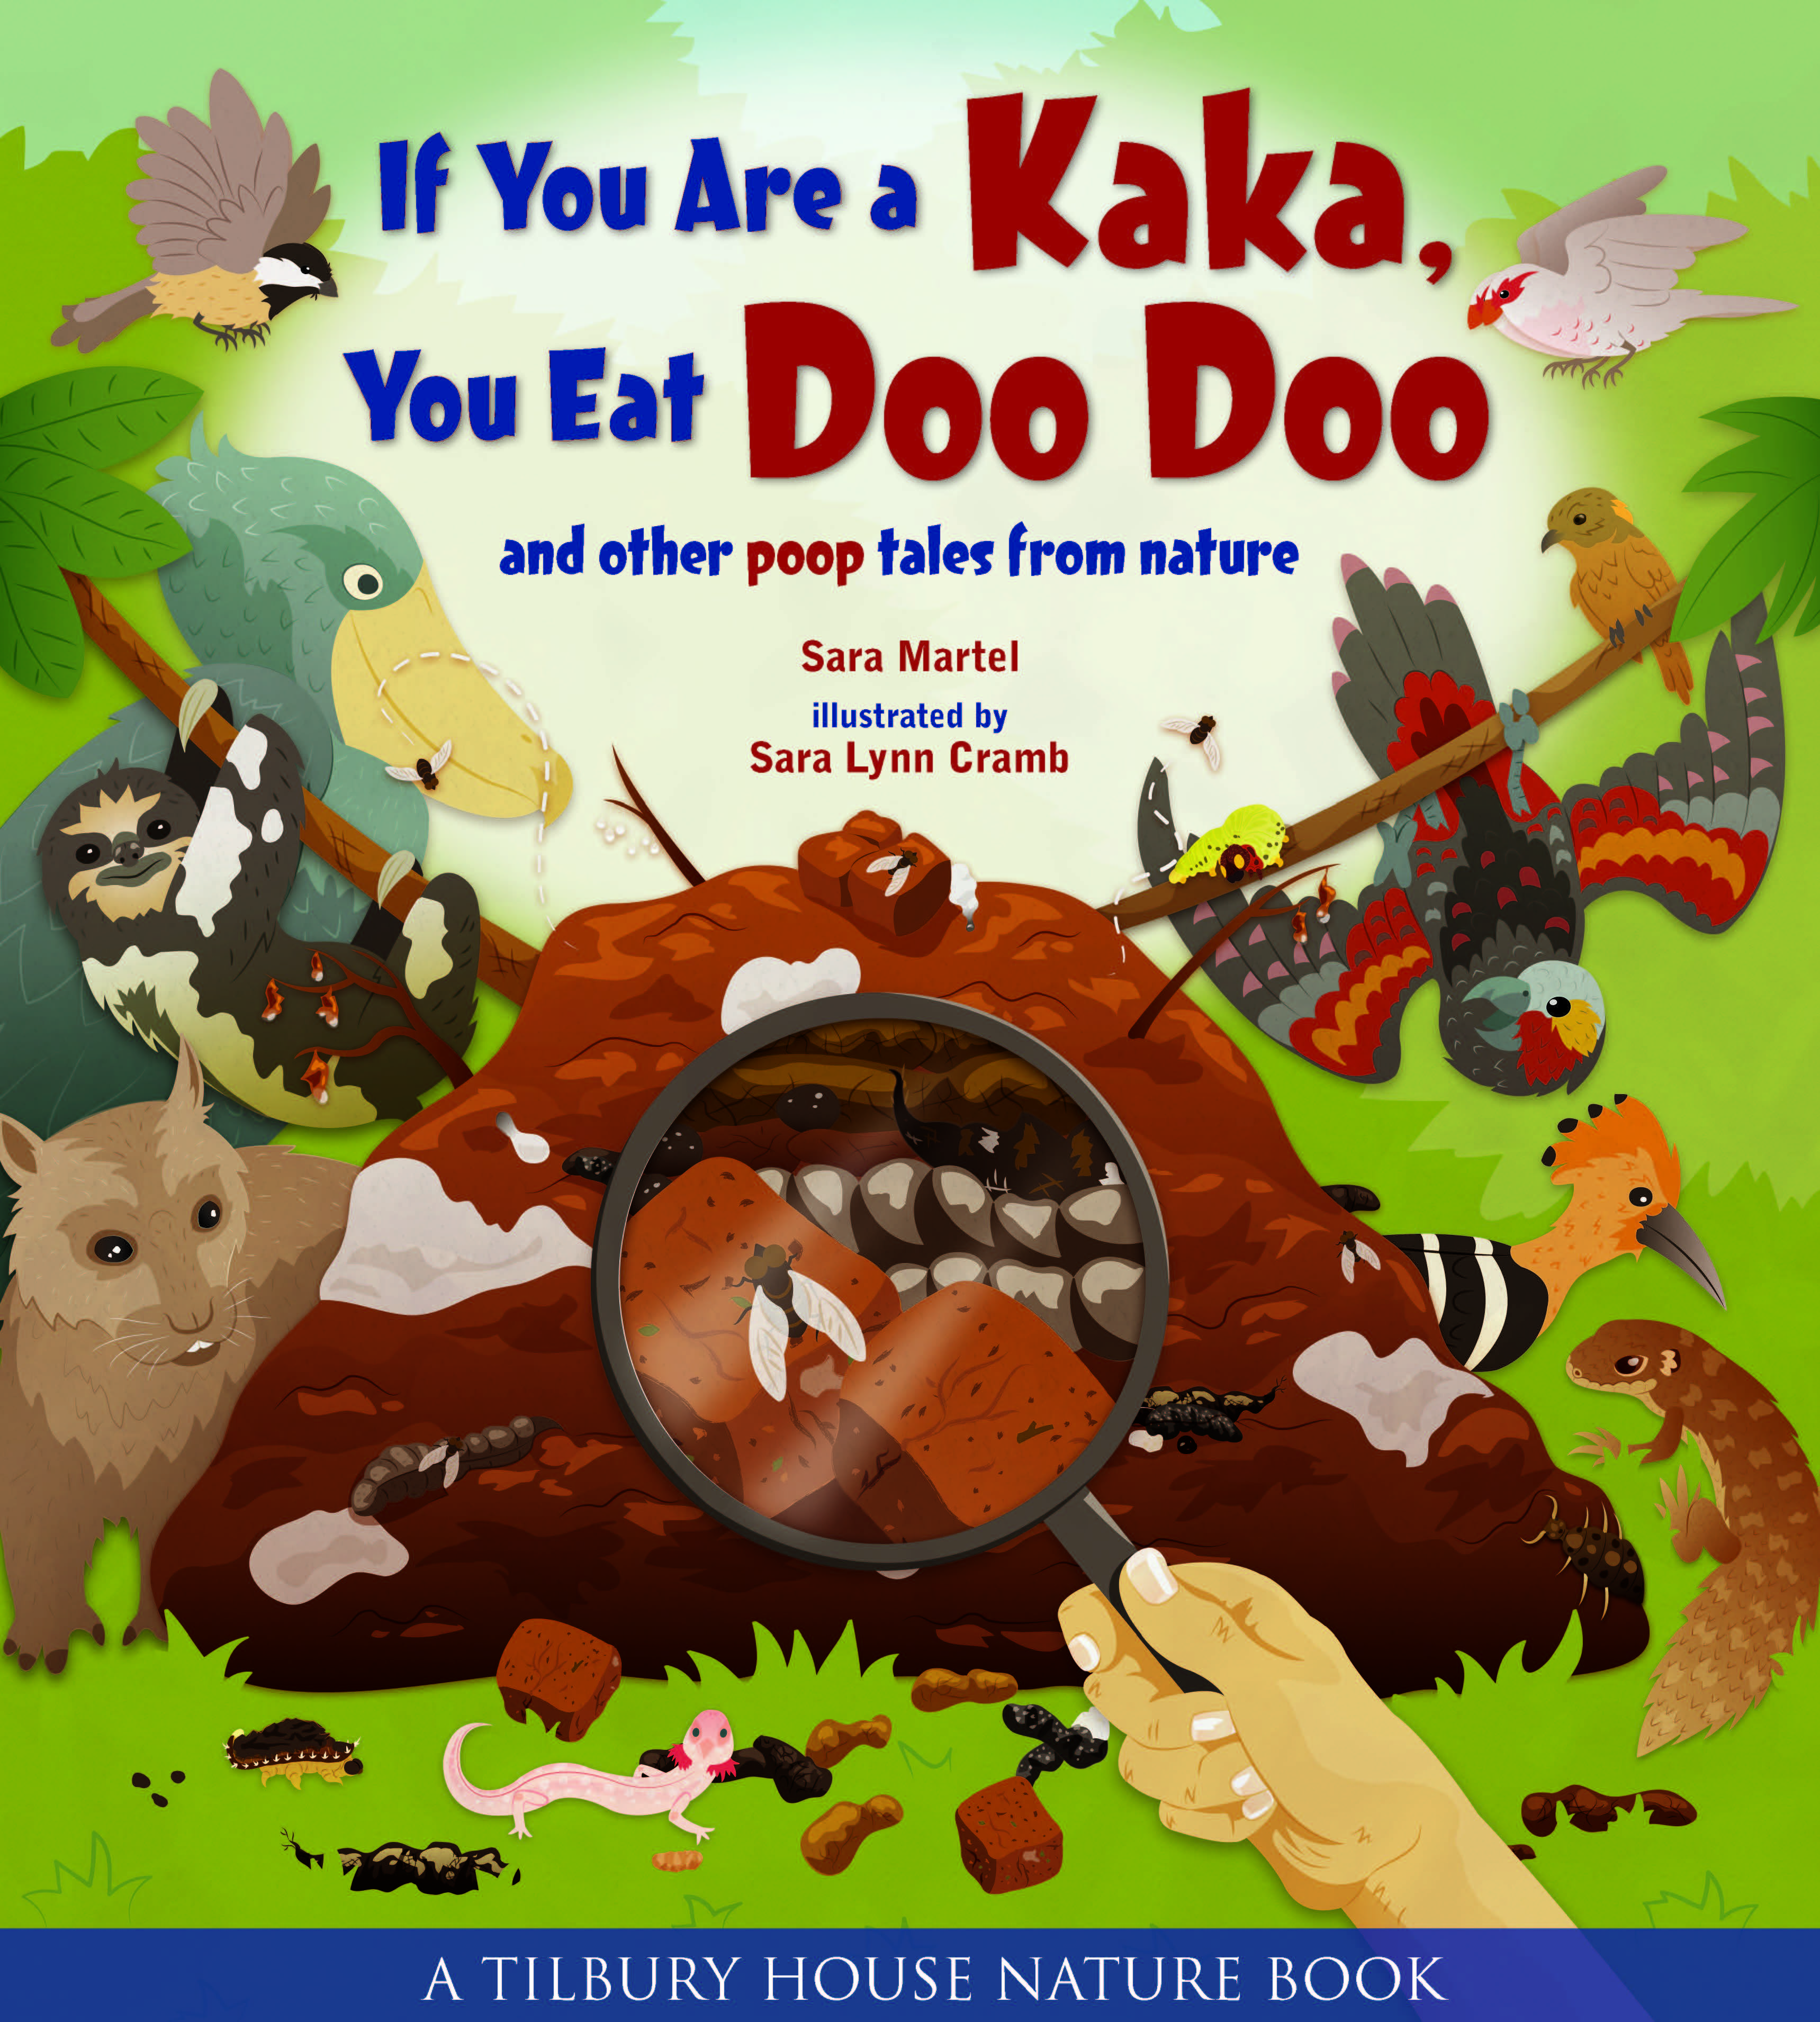 If You Are a Kaka, You Eat Doo Doo